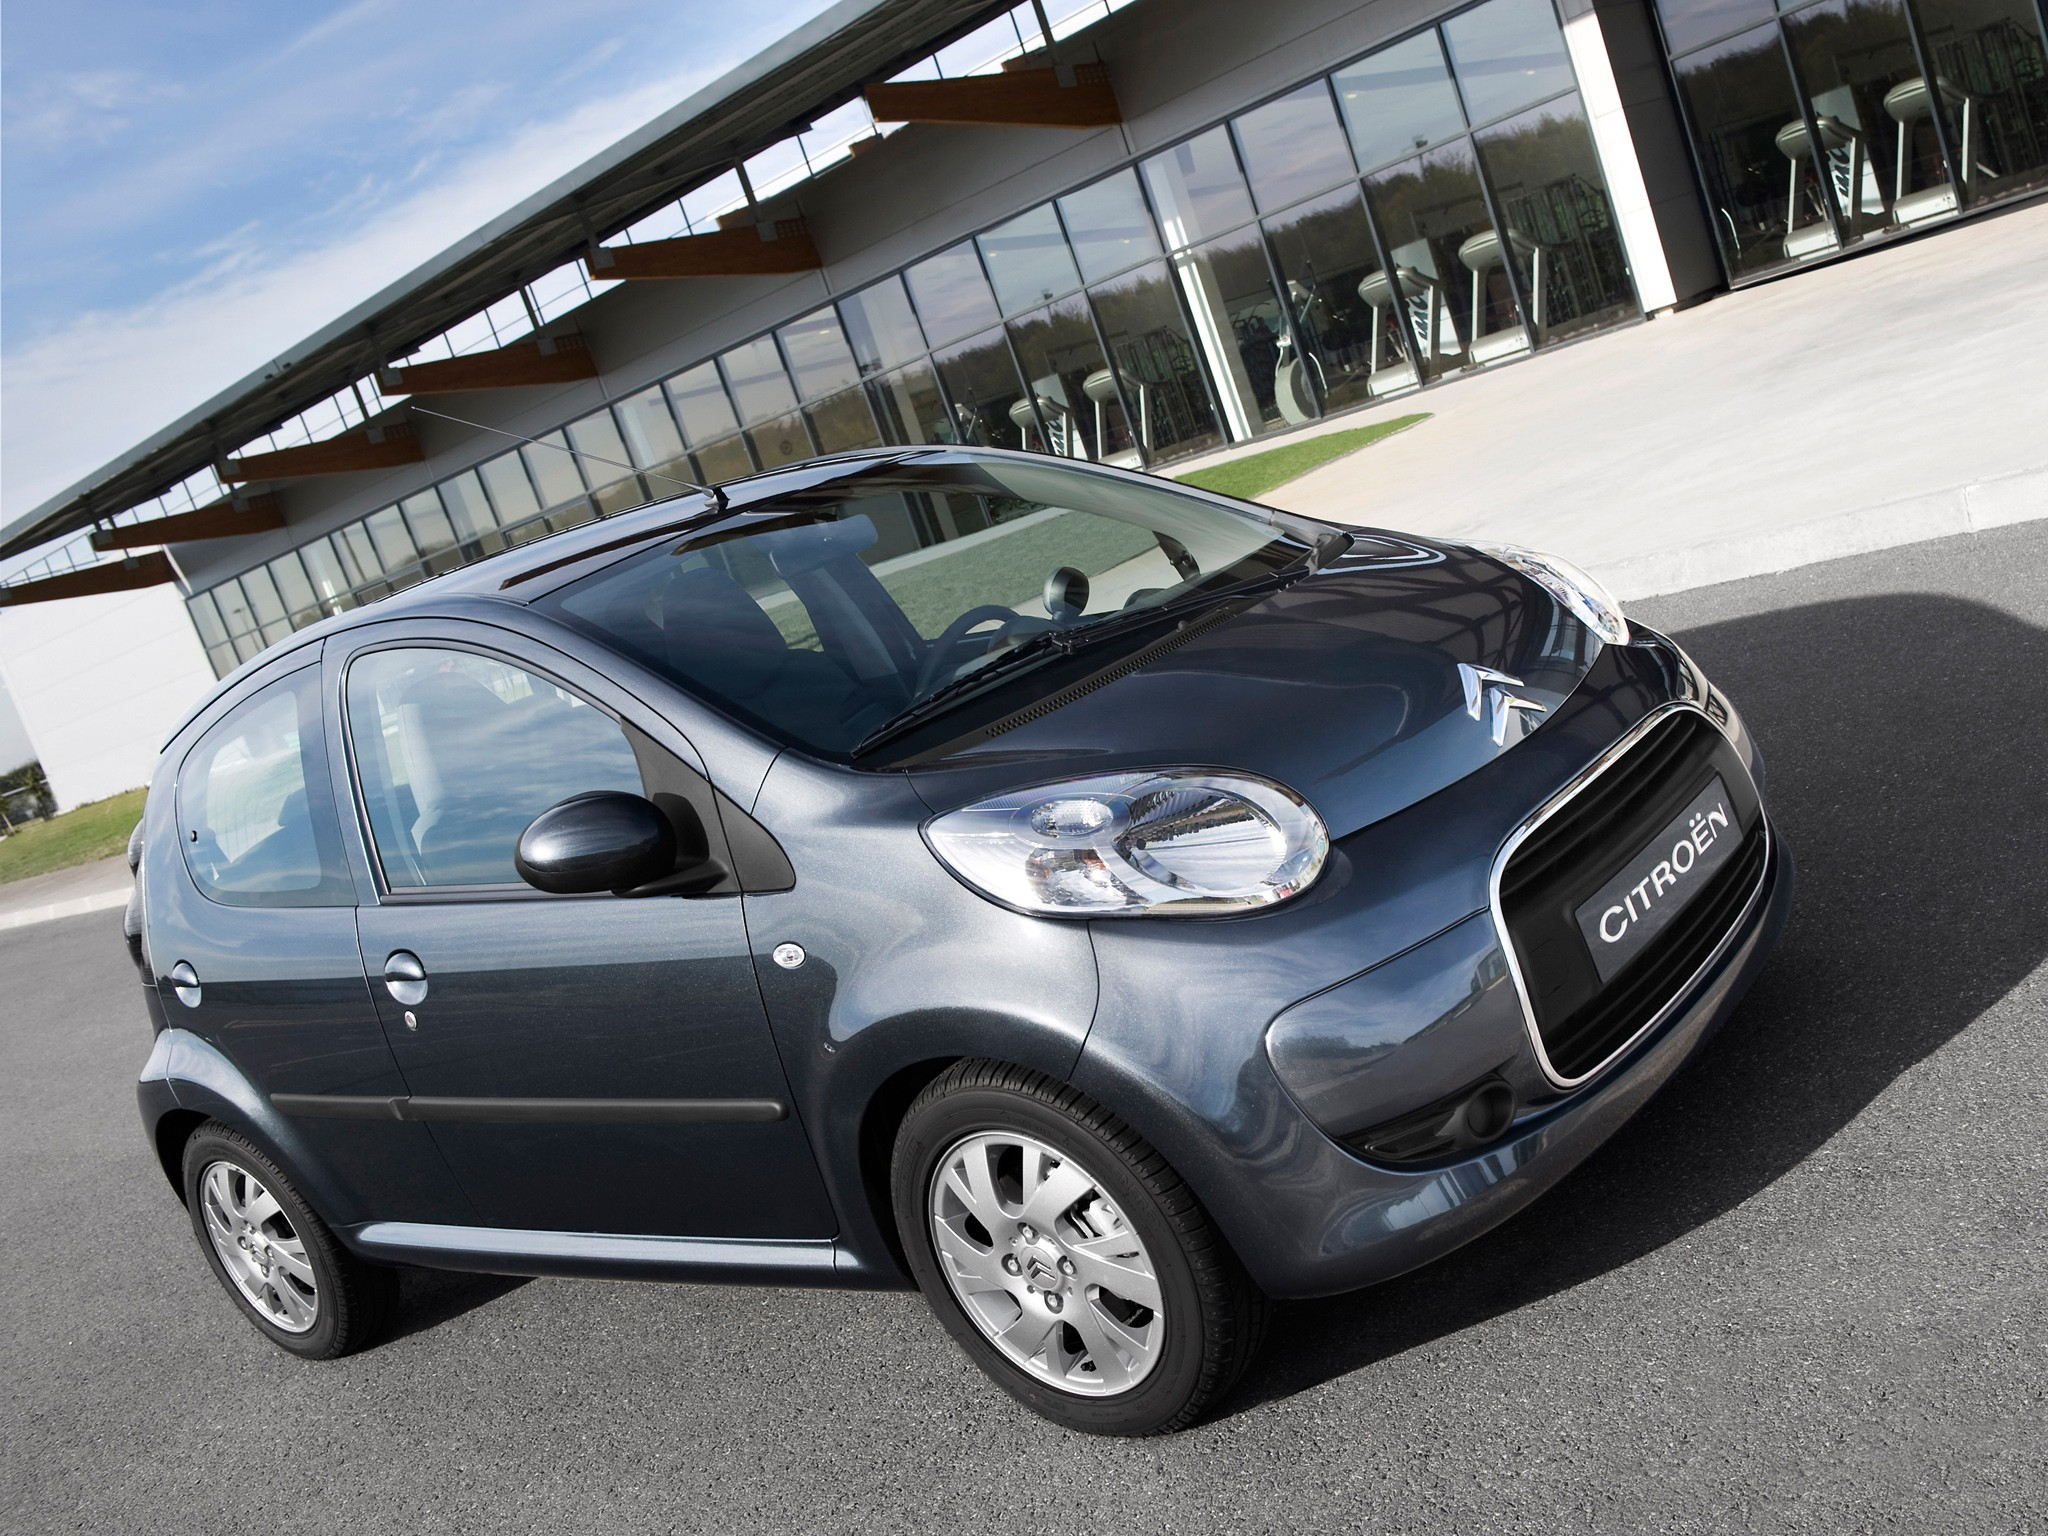 CITROEN C1 5 Doors specs & photos - 2009, 2010, 2011, 2012 ...